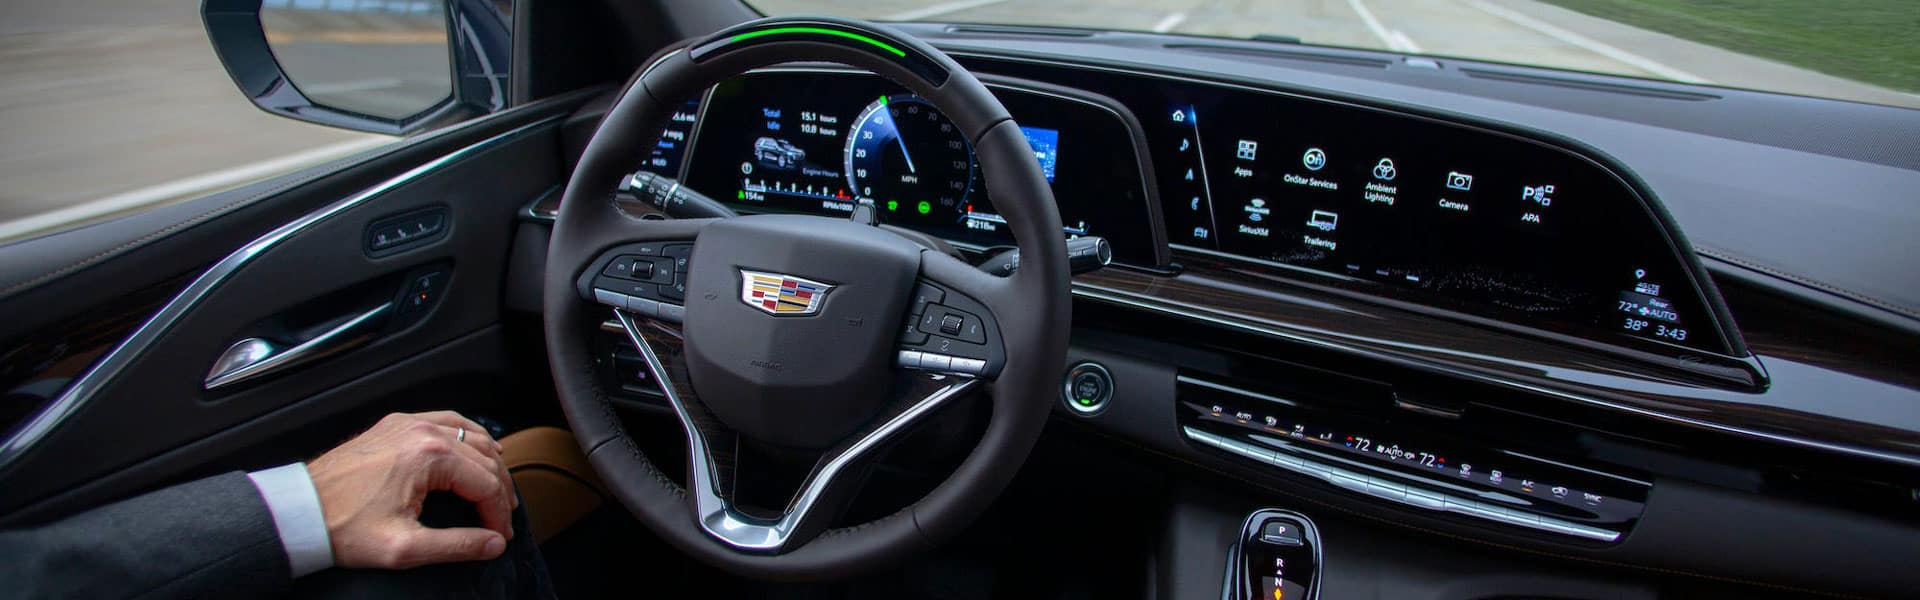 What is Cadillac Super Cruise?